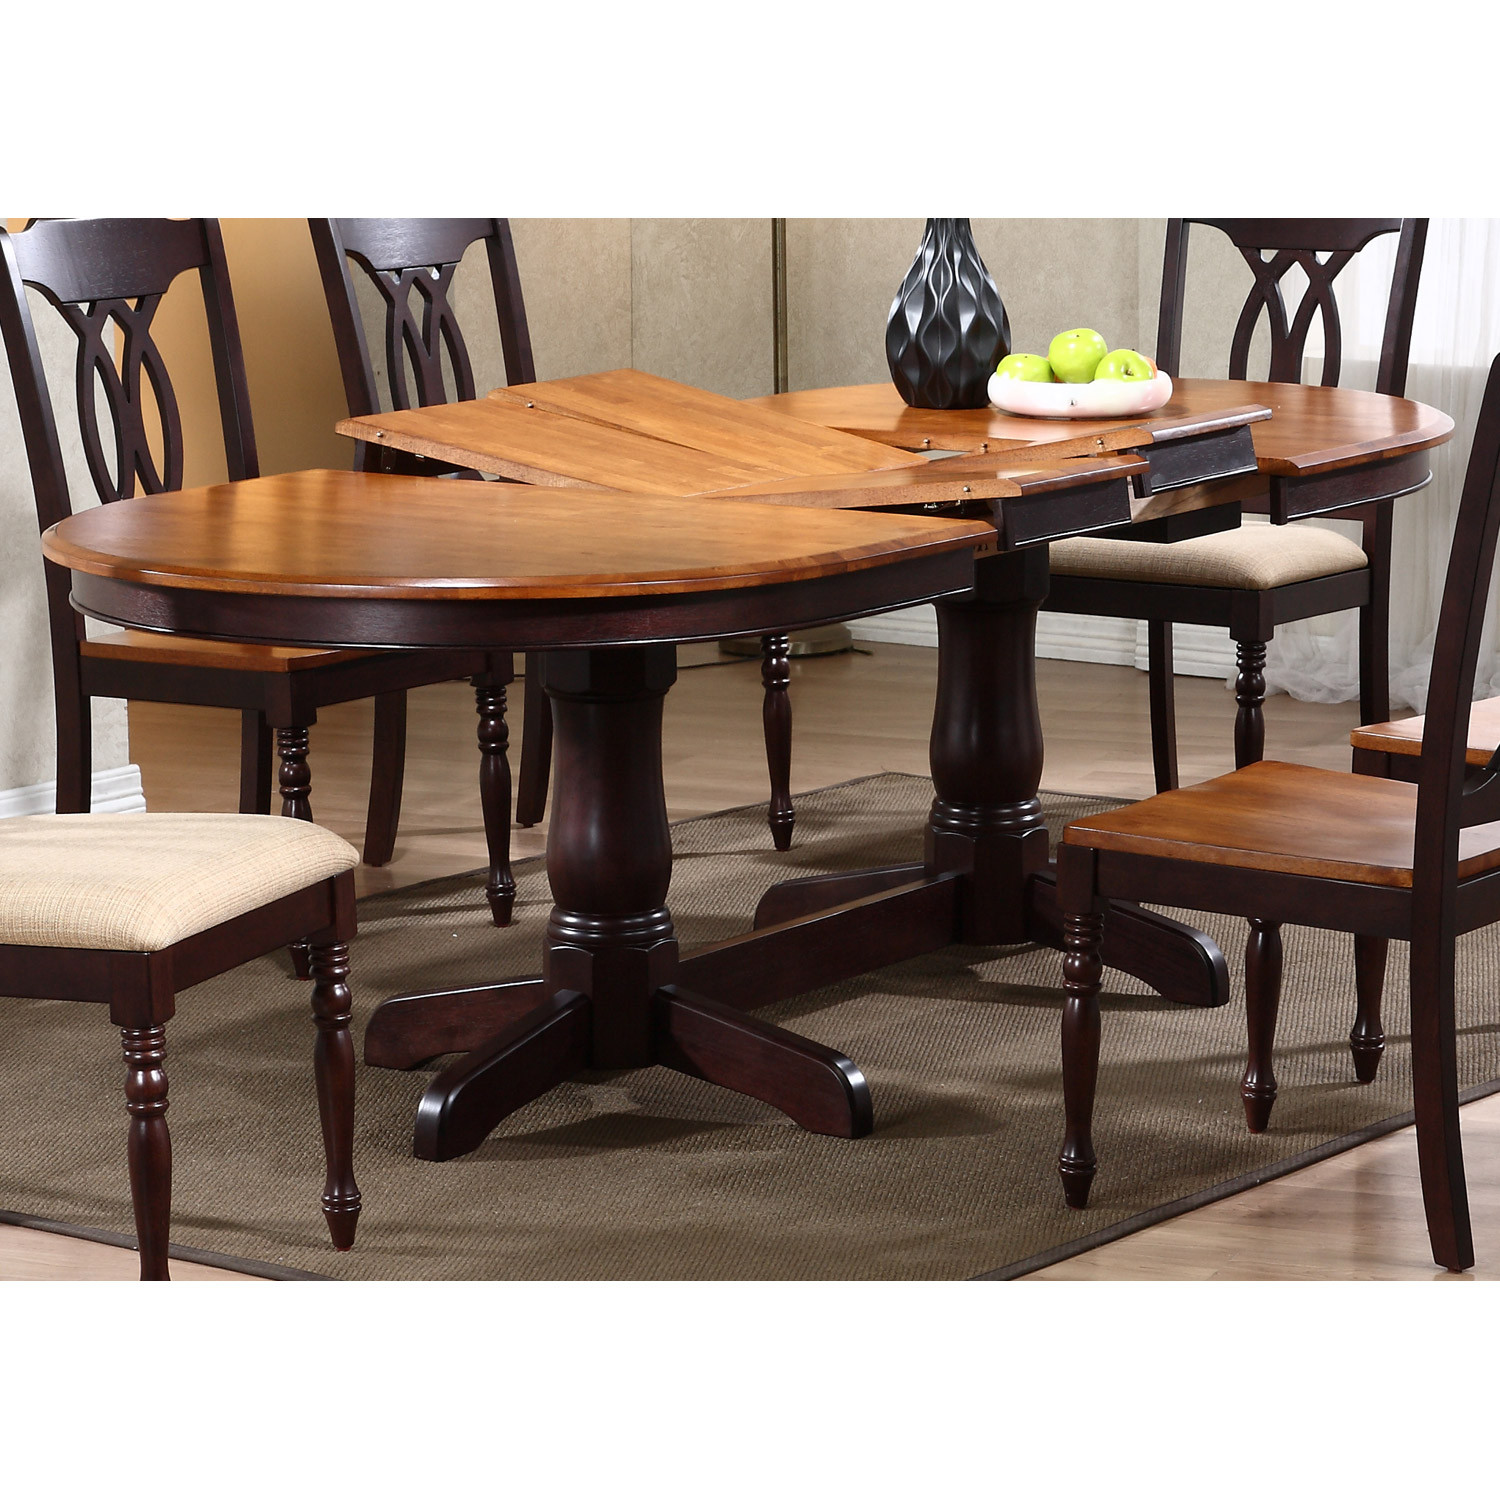 Best ideas about Oval Dining Table . Save or Pin Gatsby Oval Dining Table Double Butterfly Leaf Whiskey Now.